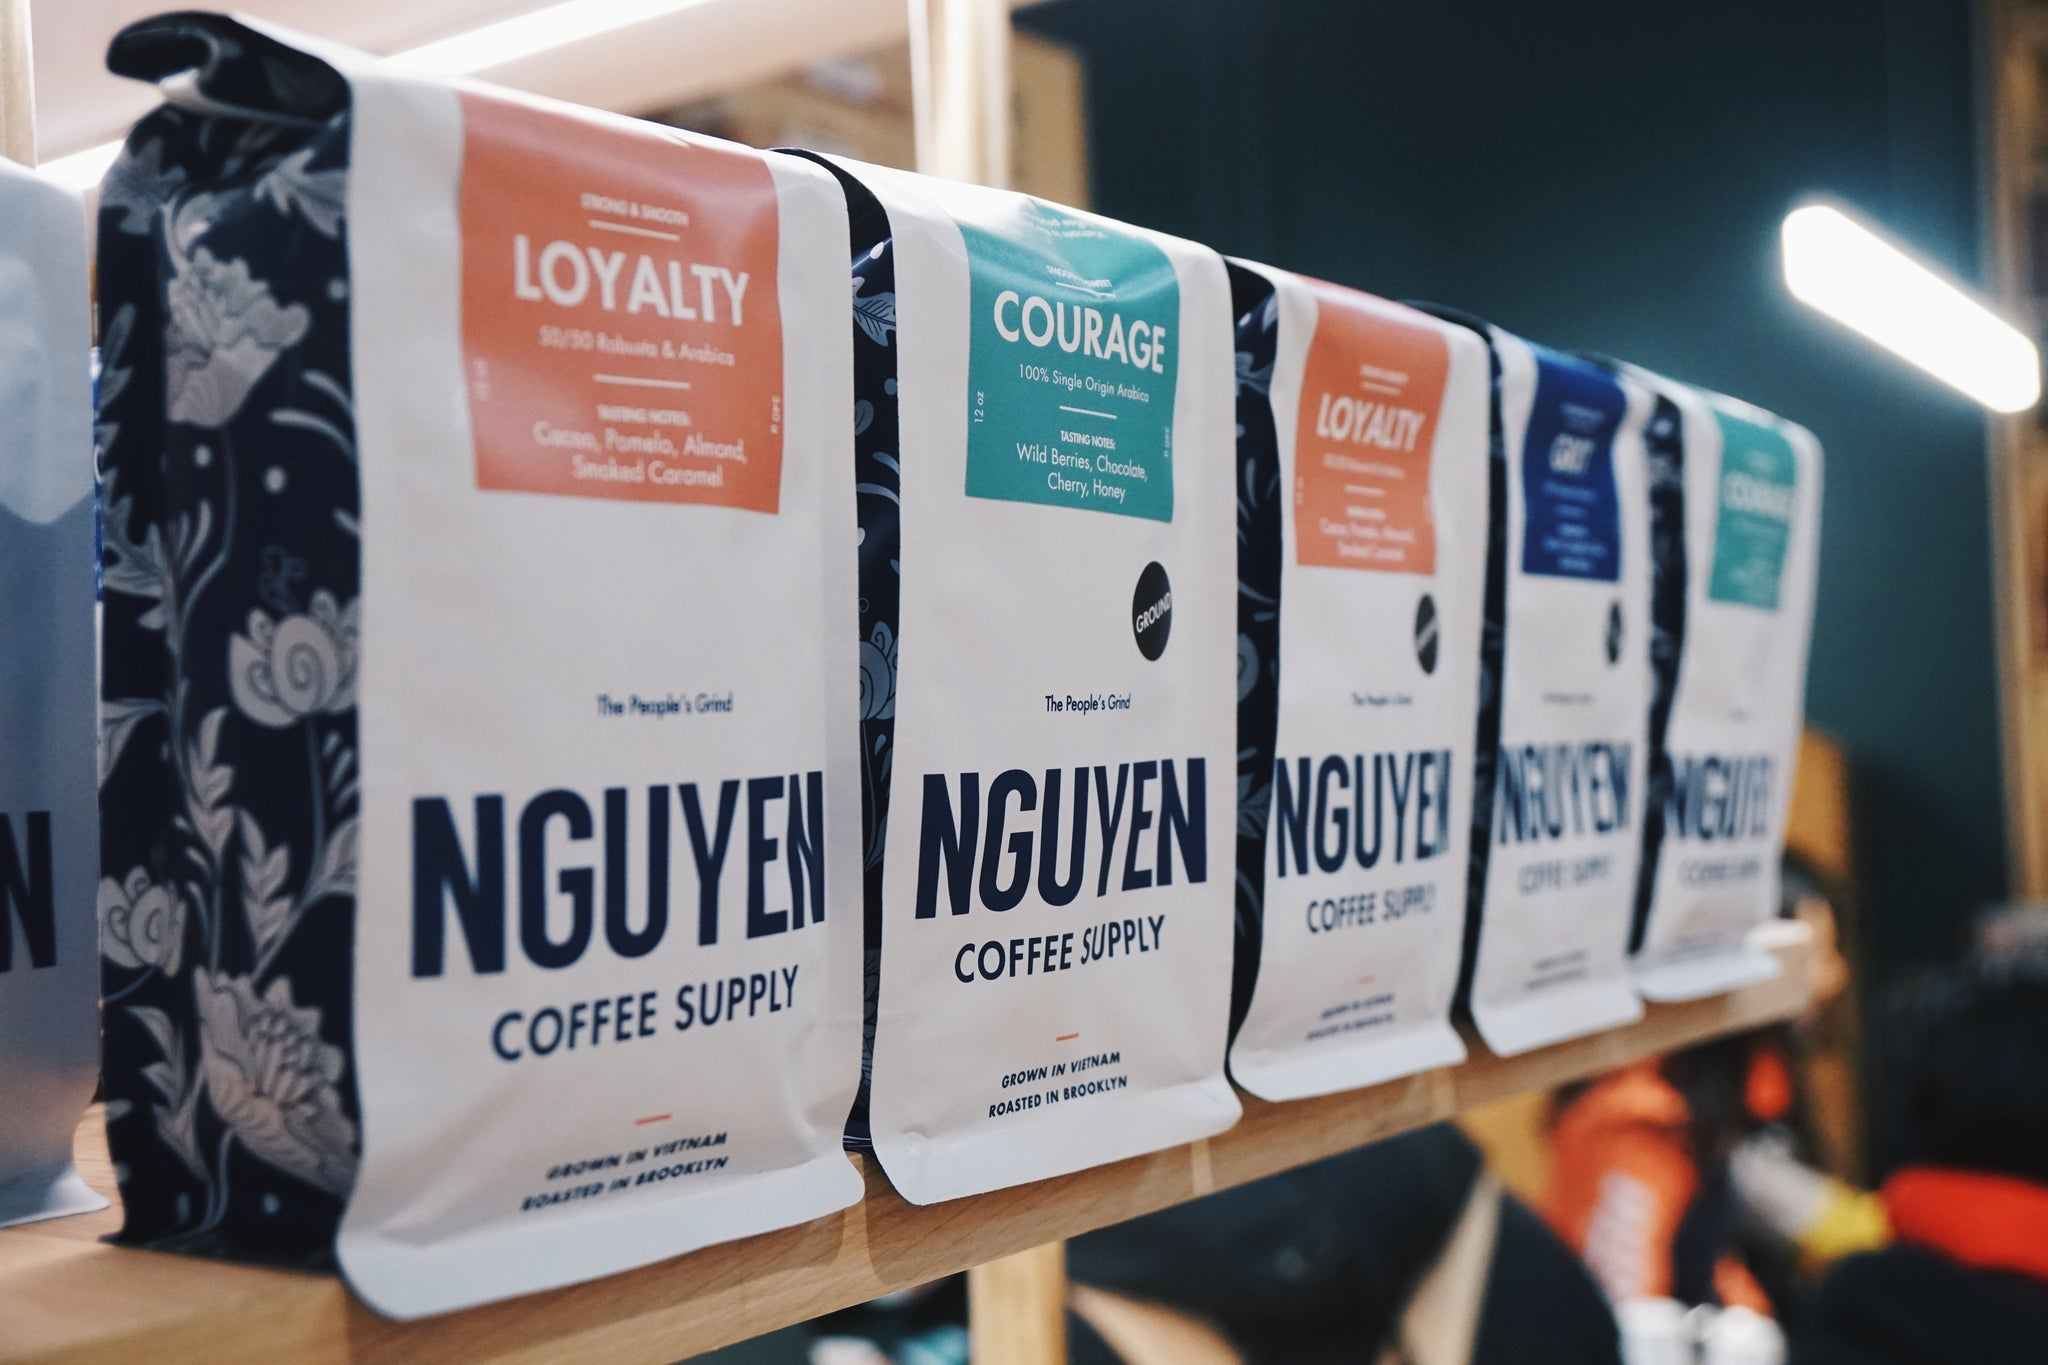 Nguyen Coffee Supply Vietnamese coffee